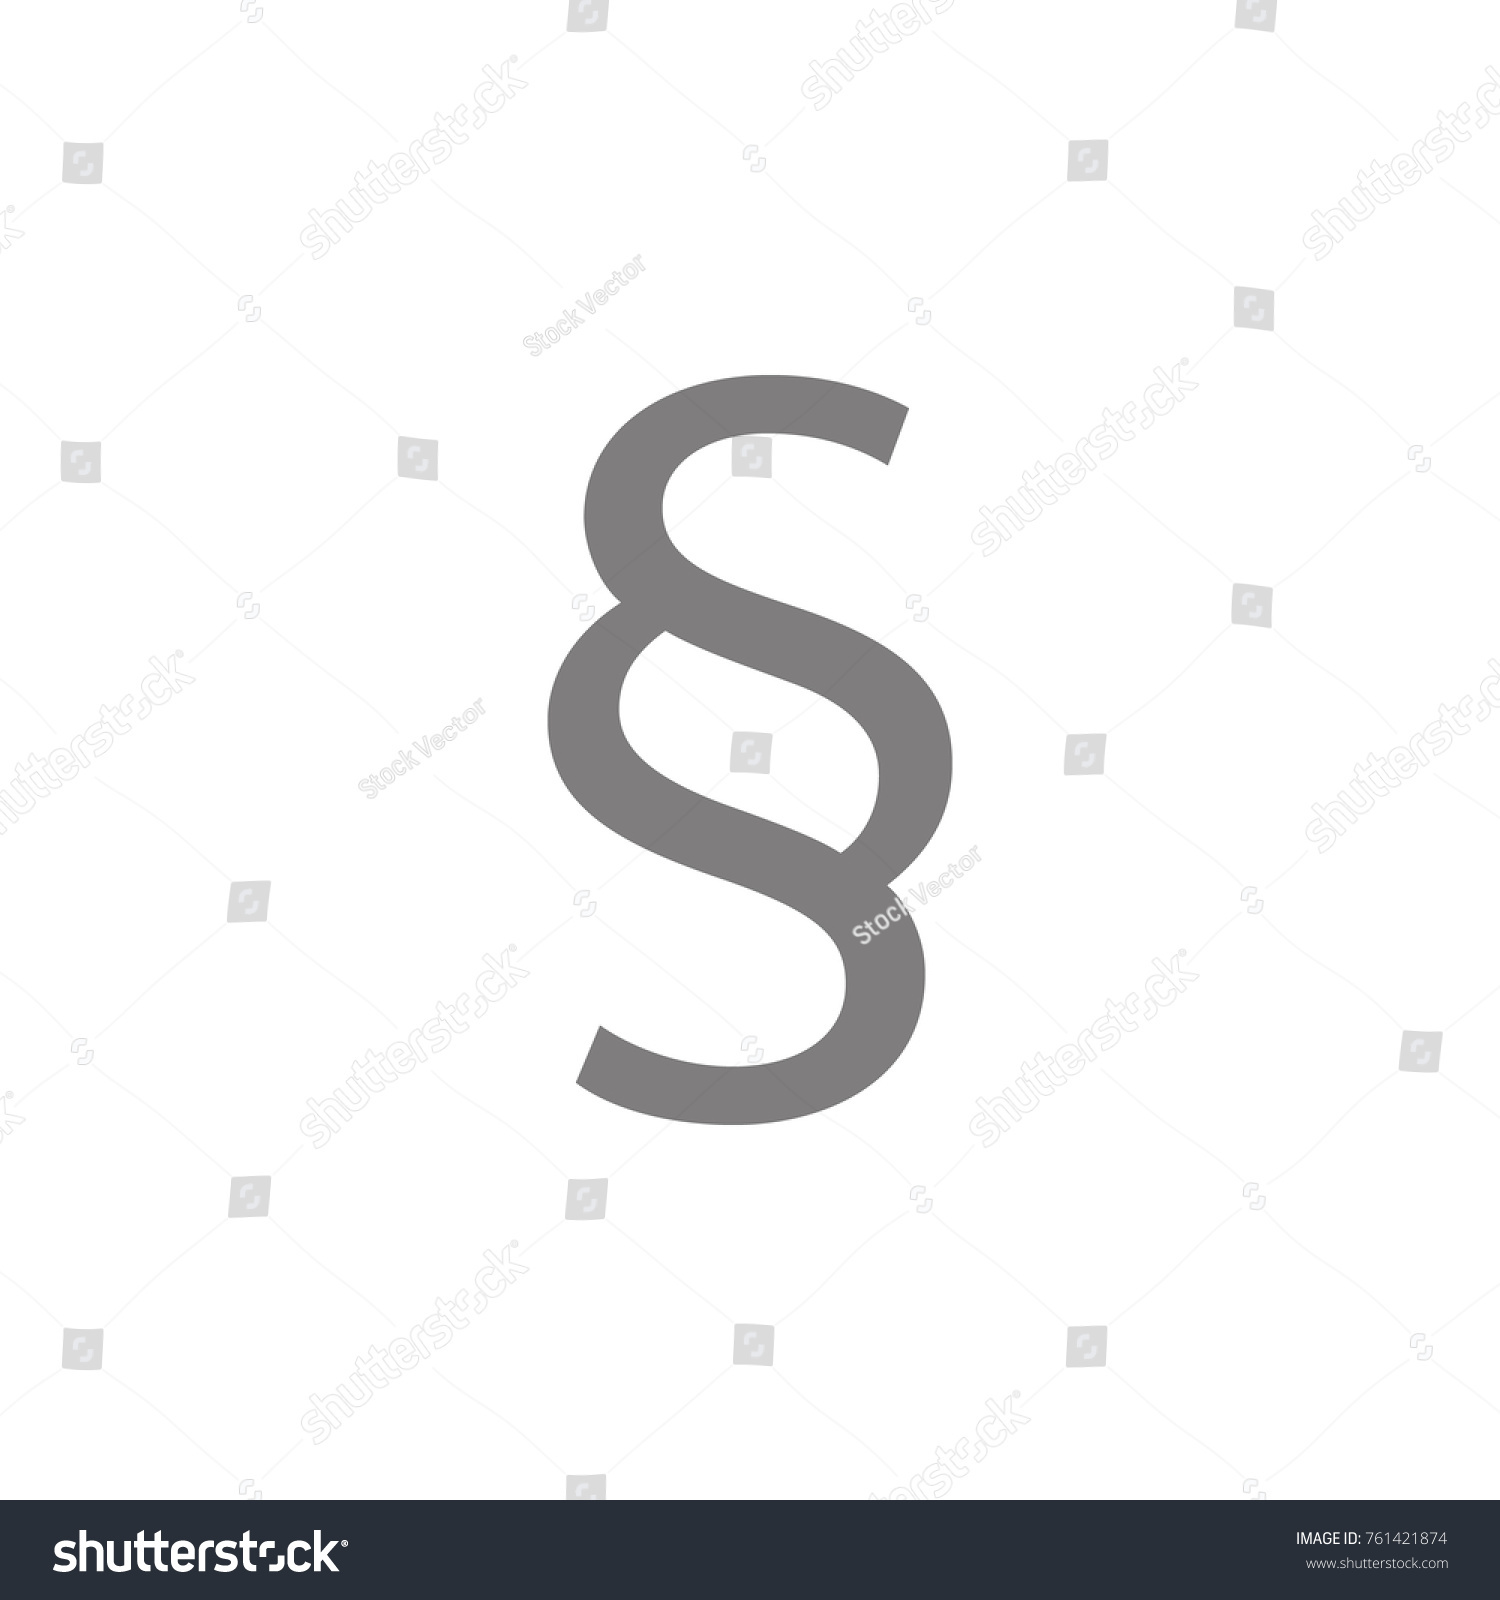 Paragraph sign icon web element premium stock illustration paragraph sign icon web element premium quality graphic design signs symbols collection buycottarizona Gallery